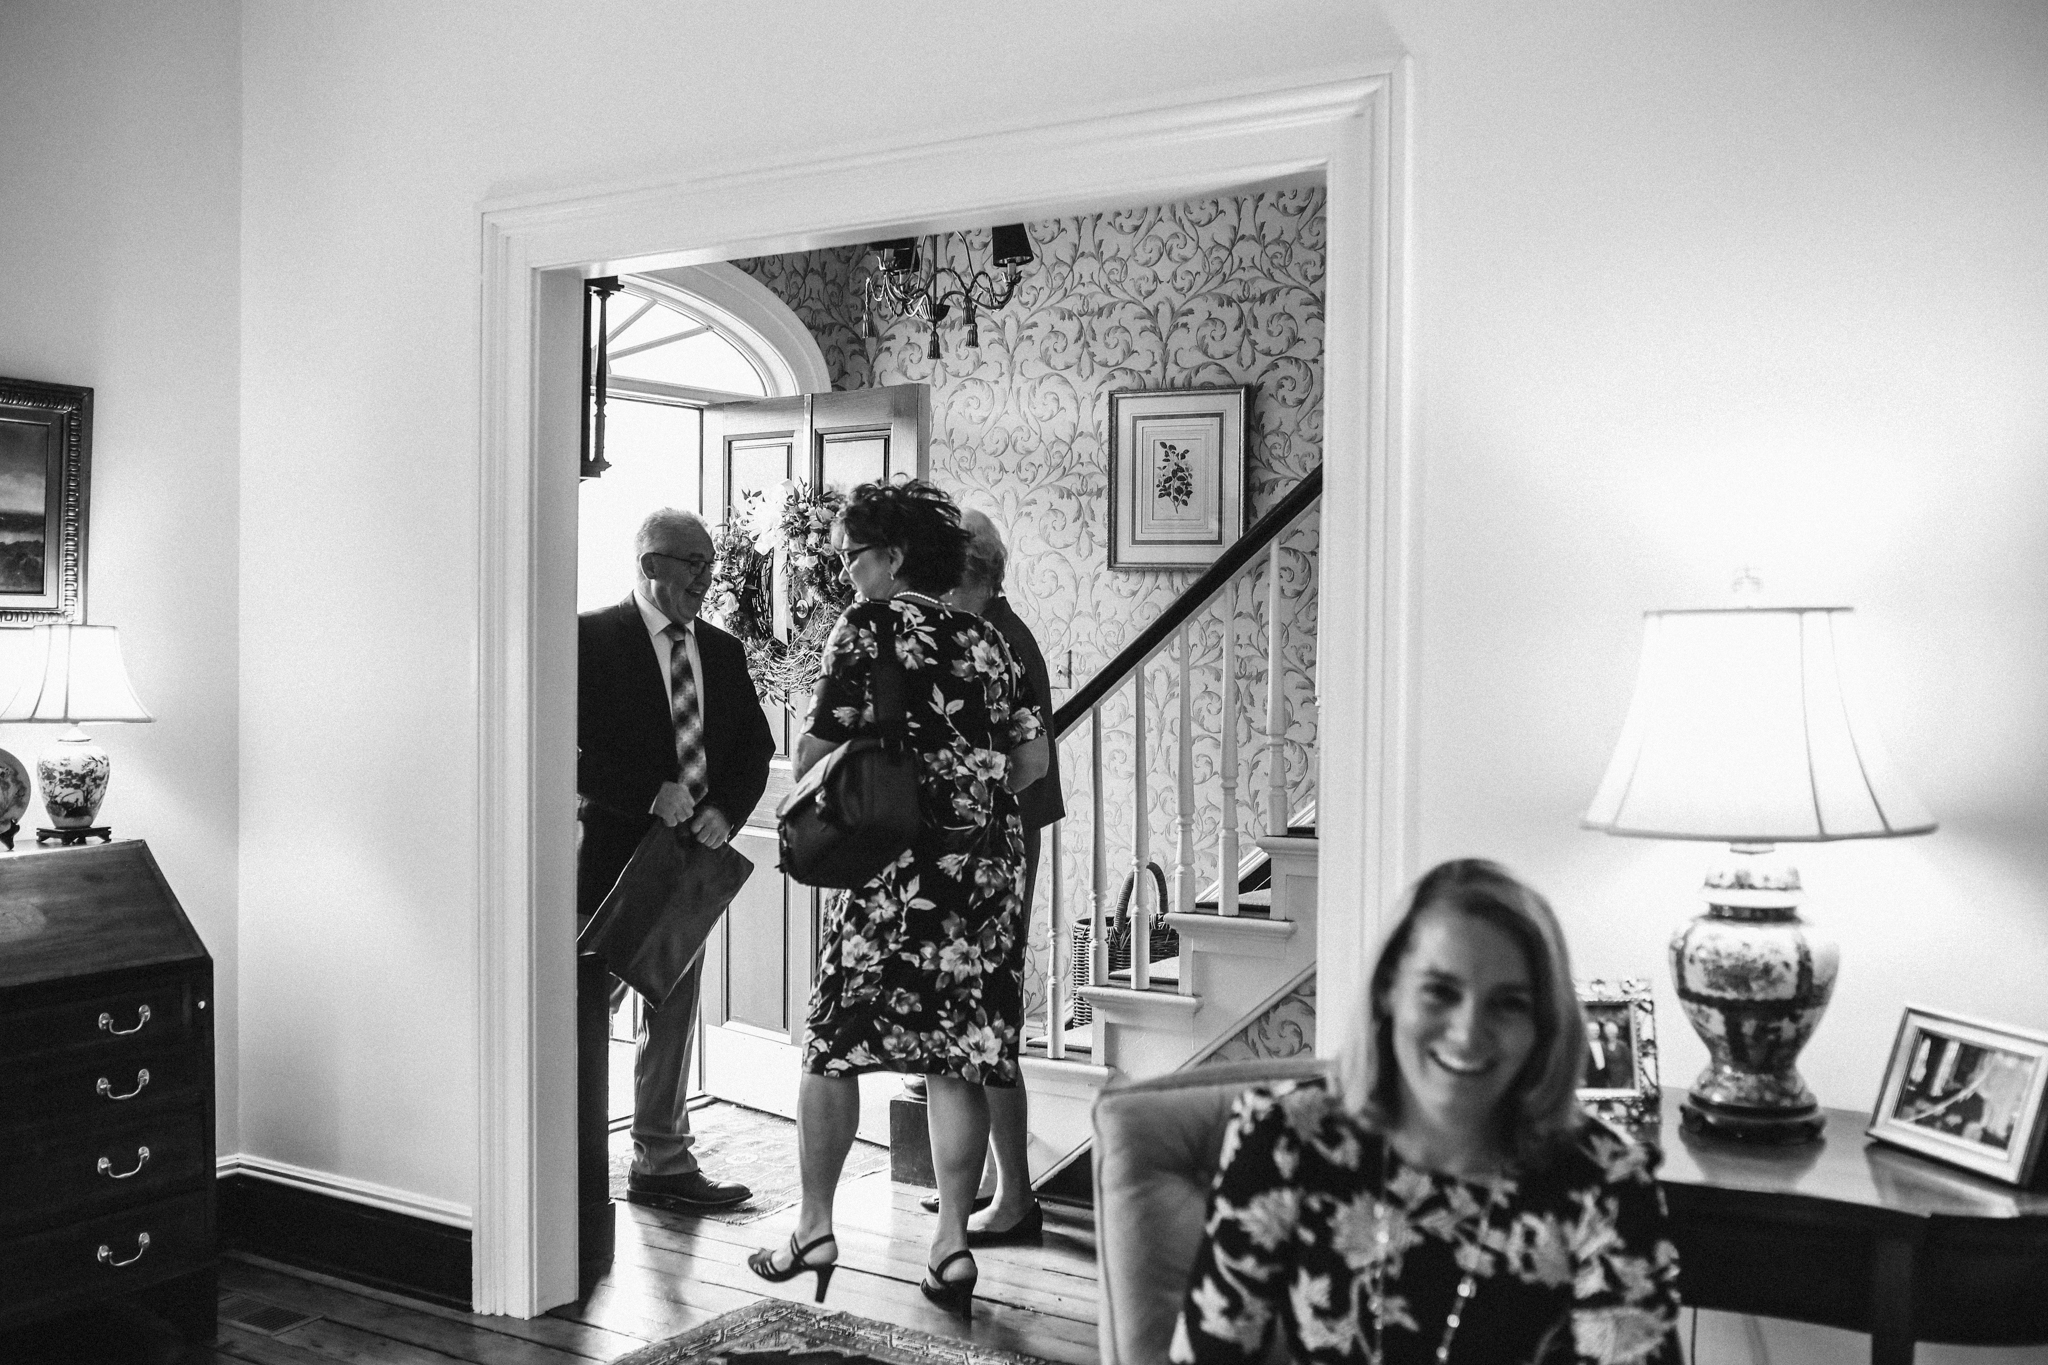 cook_wedding_richmond_virginia_rebecca_burt_photography.jpg